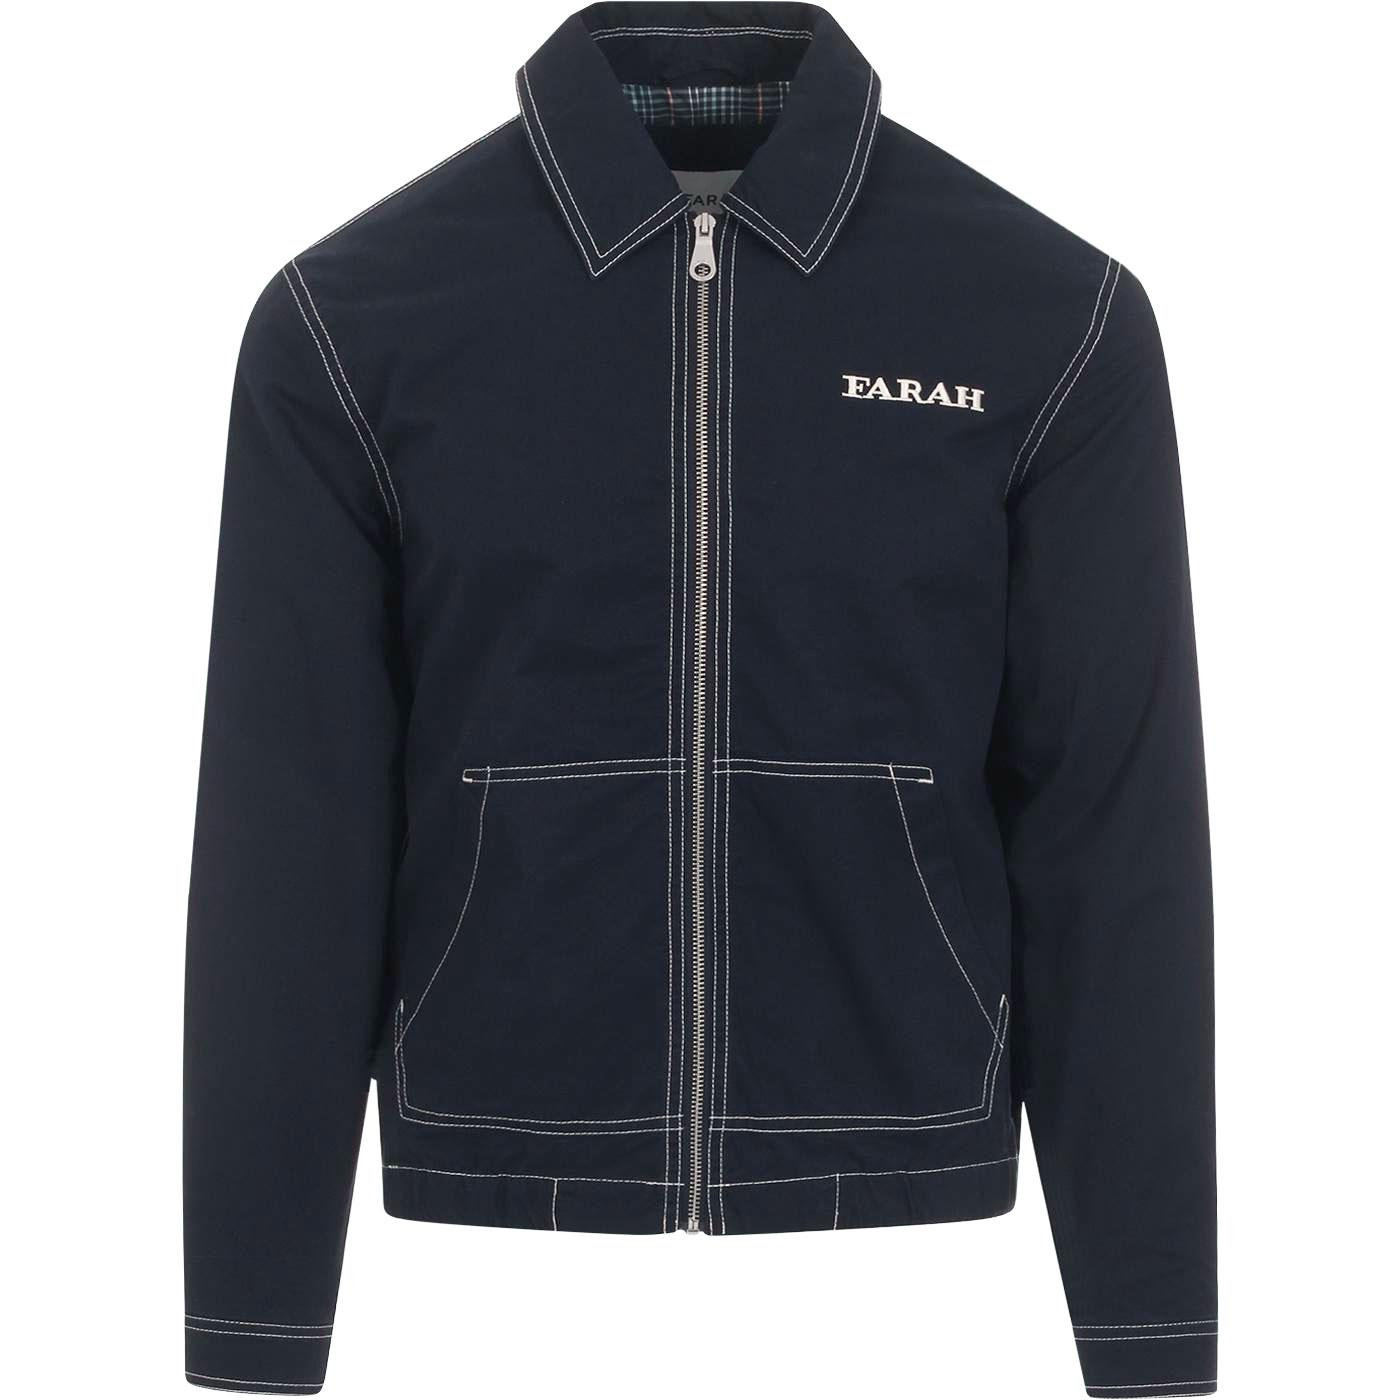 Fairbanks FARAH Retro Stitch Coaches Jacket (Navy)